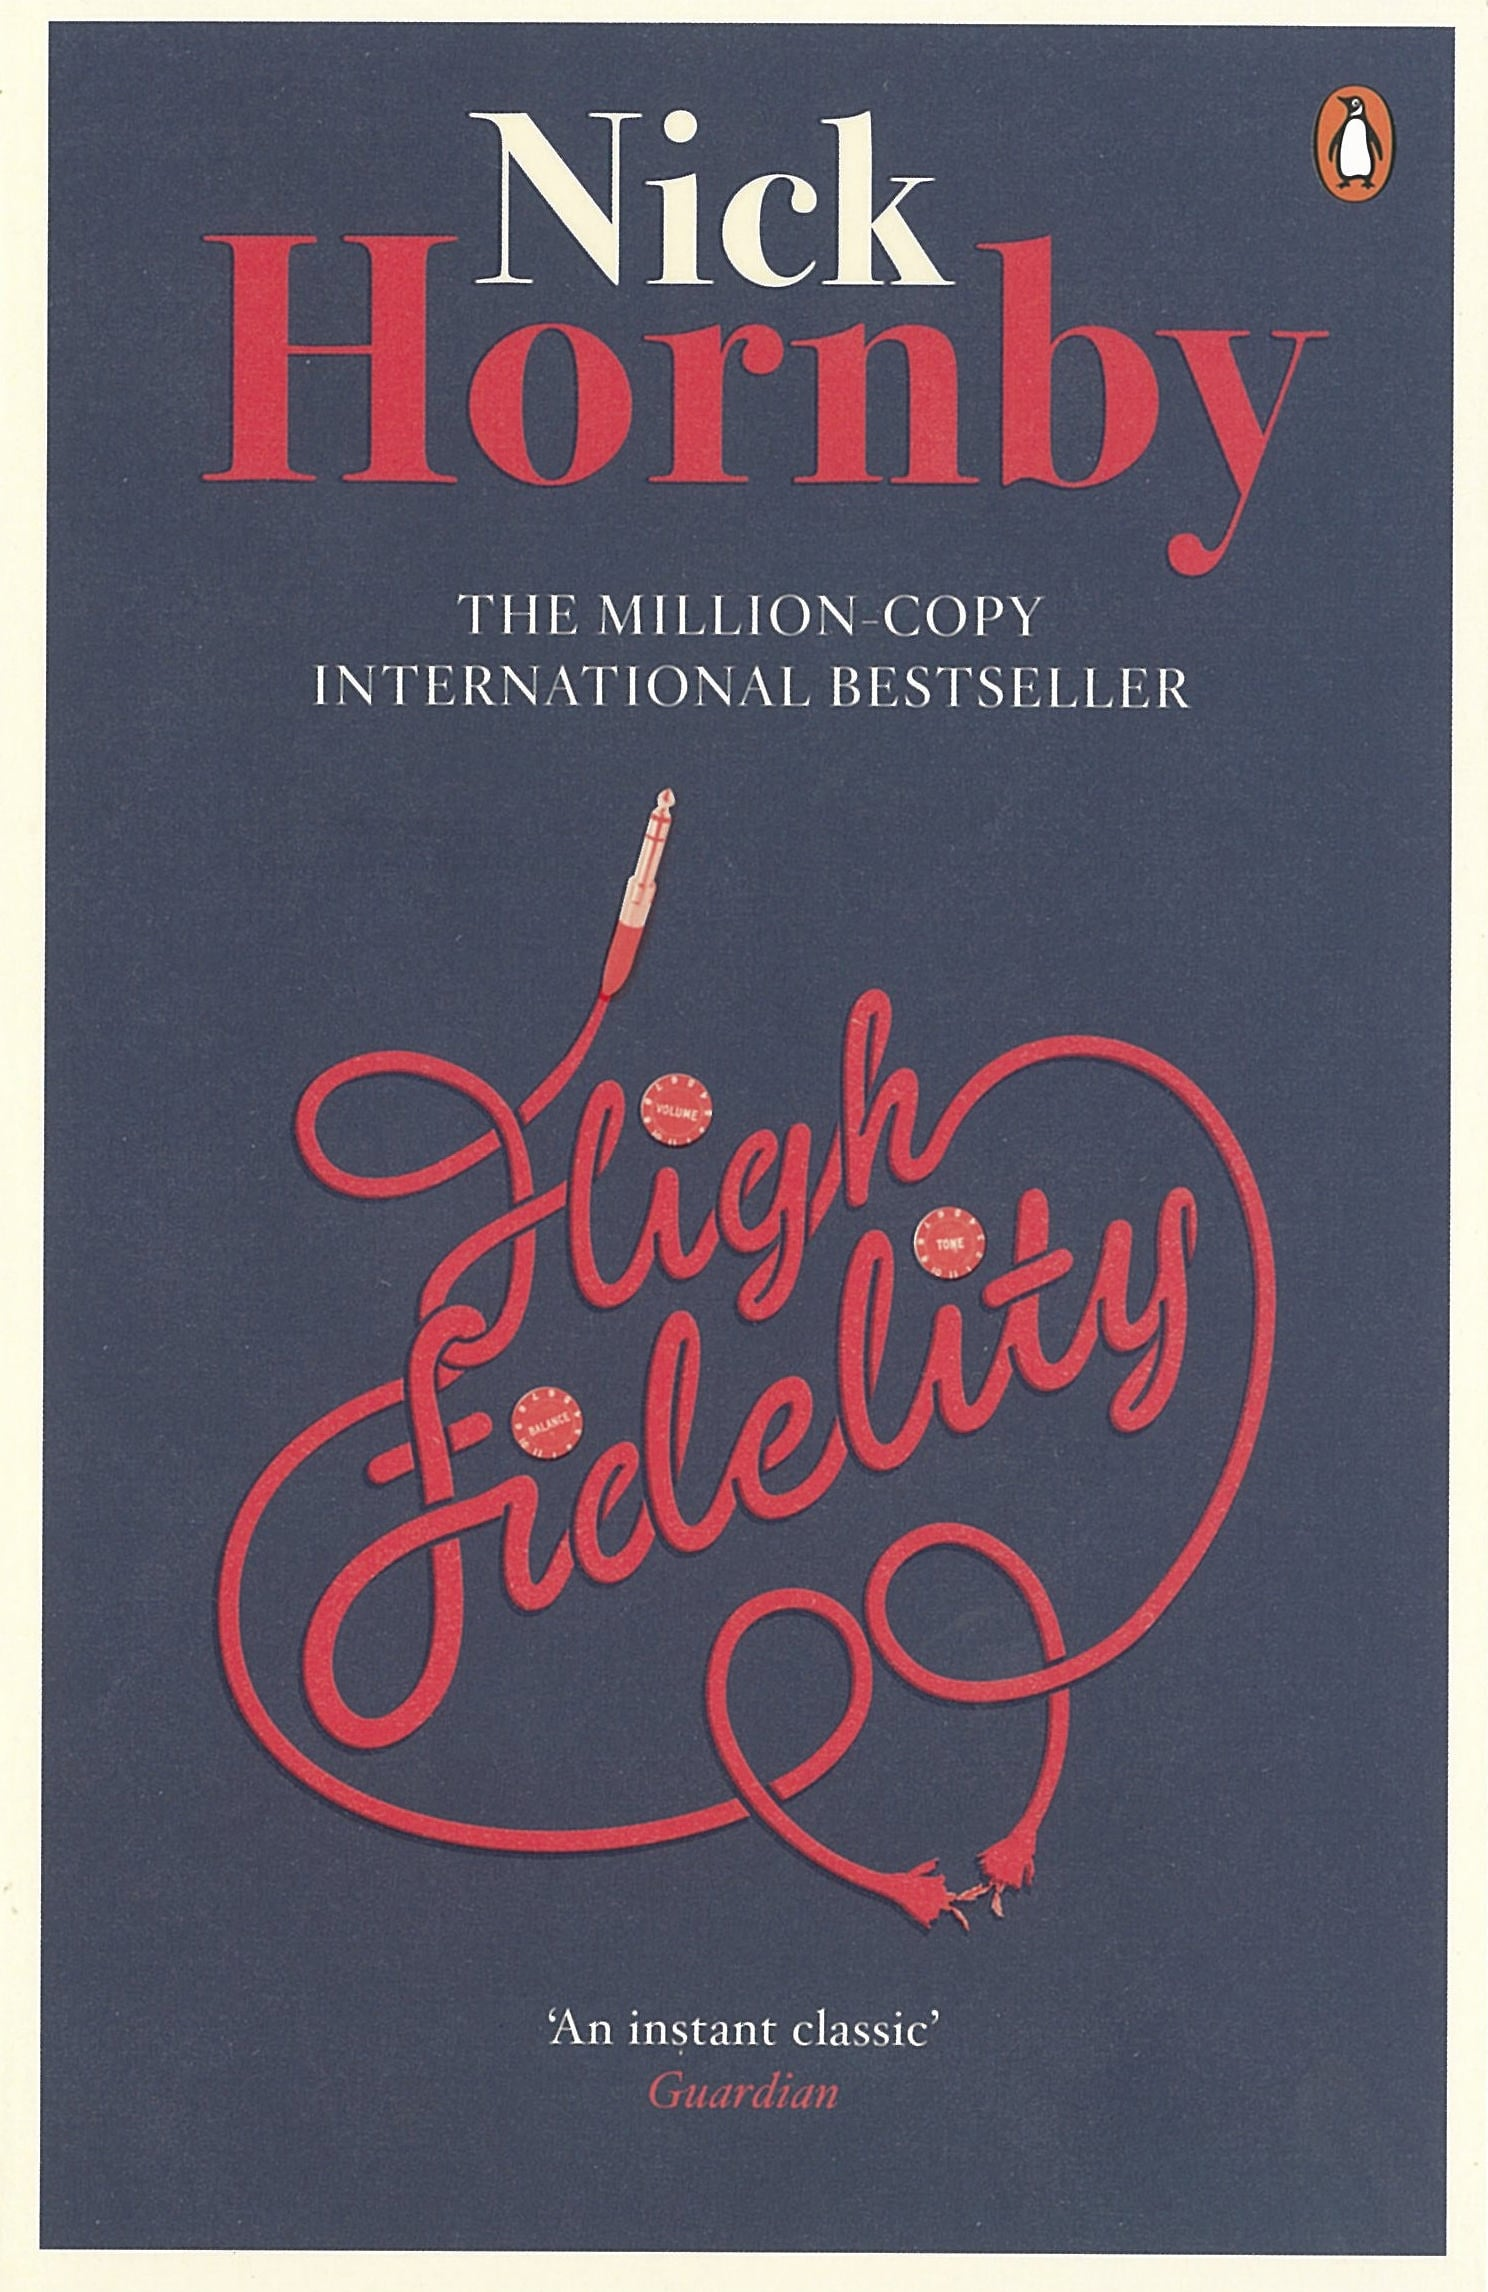 Image result for nick hornby's high fidelity